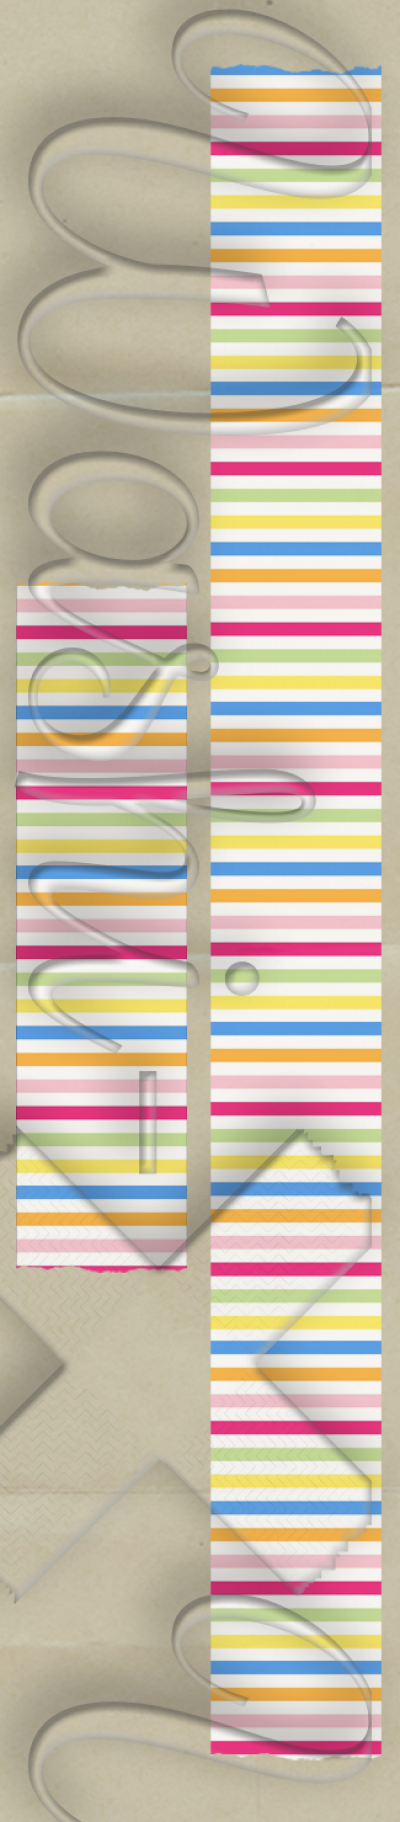 Washi-X Washi Tape Lines patterned washi tape style 1